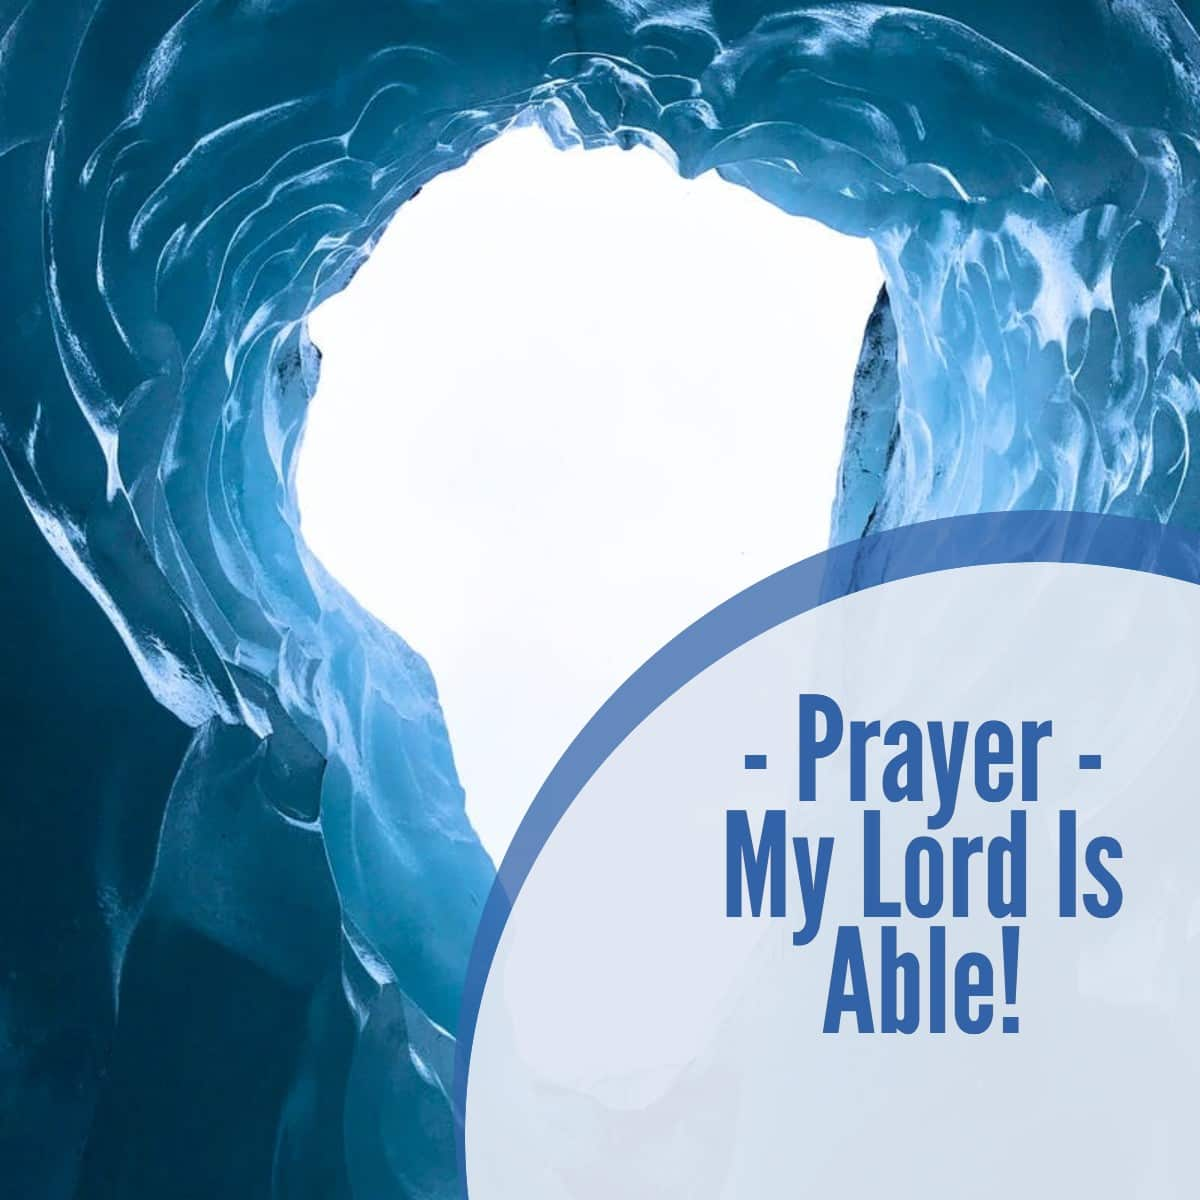 Prayer – My Lord is Able!